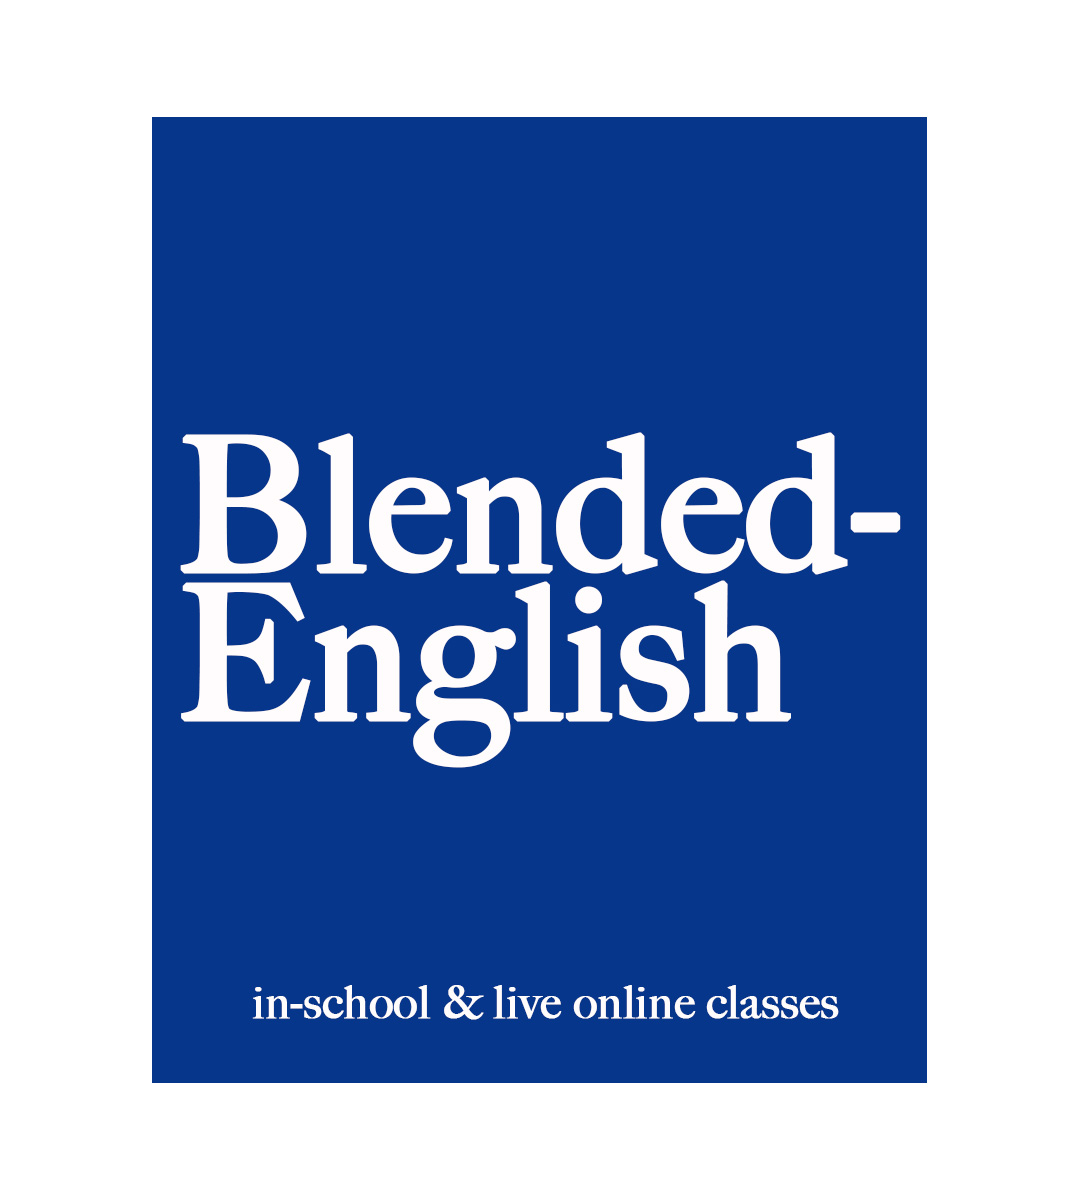 blended english blue